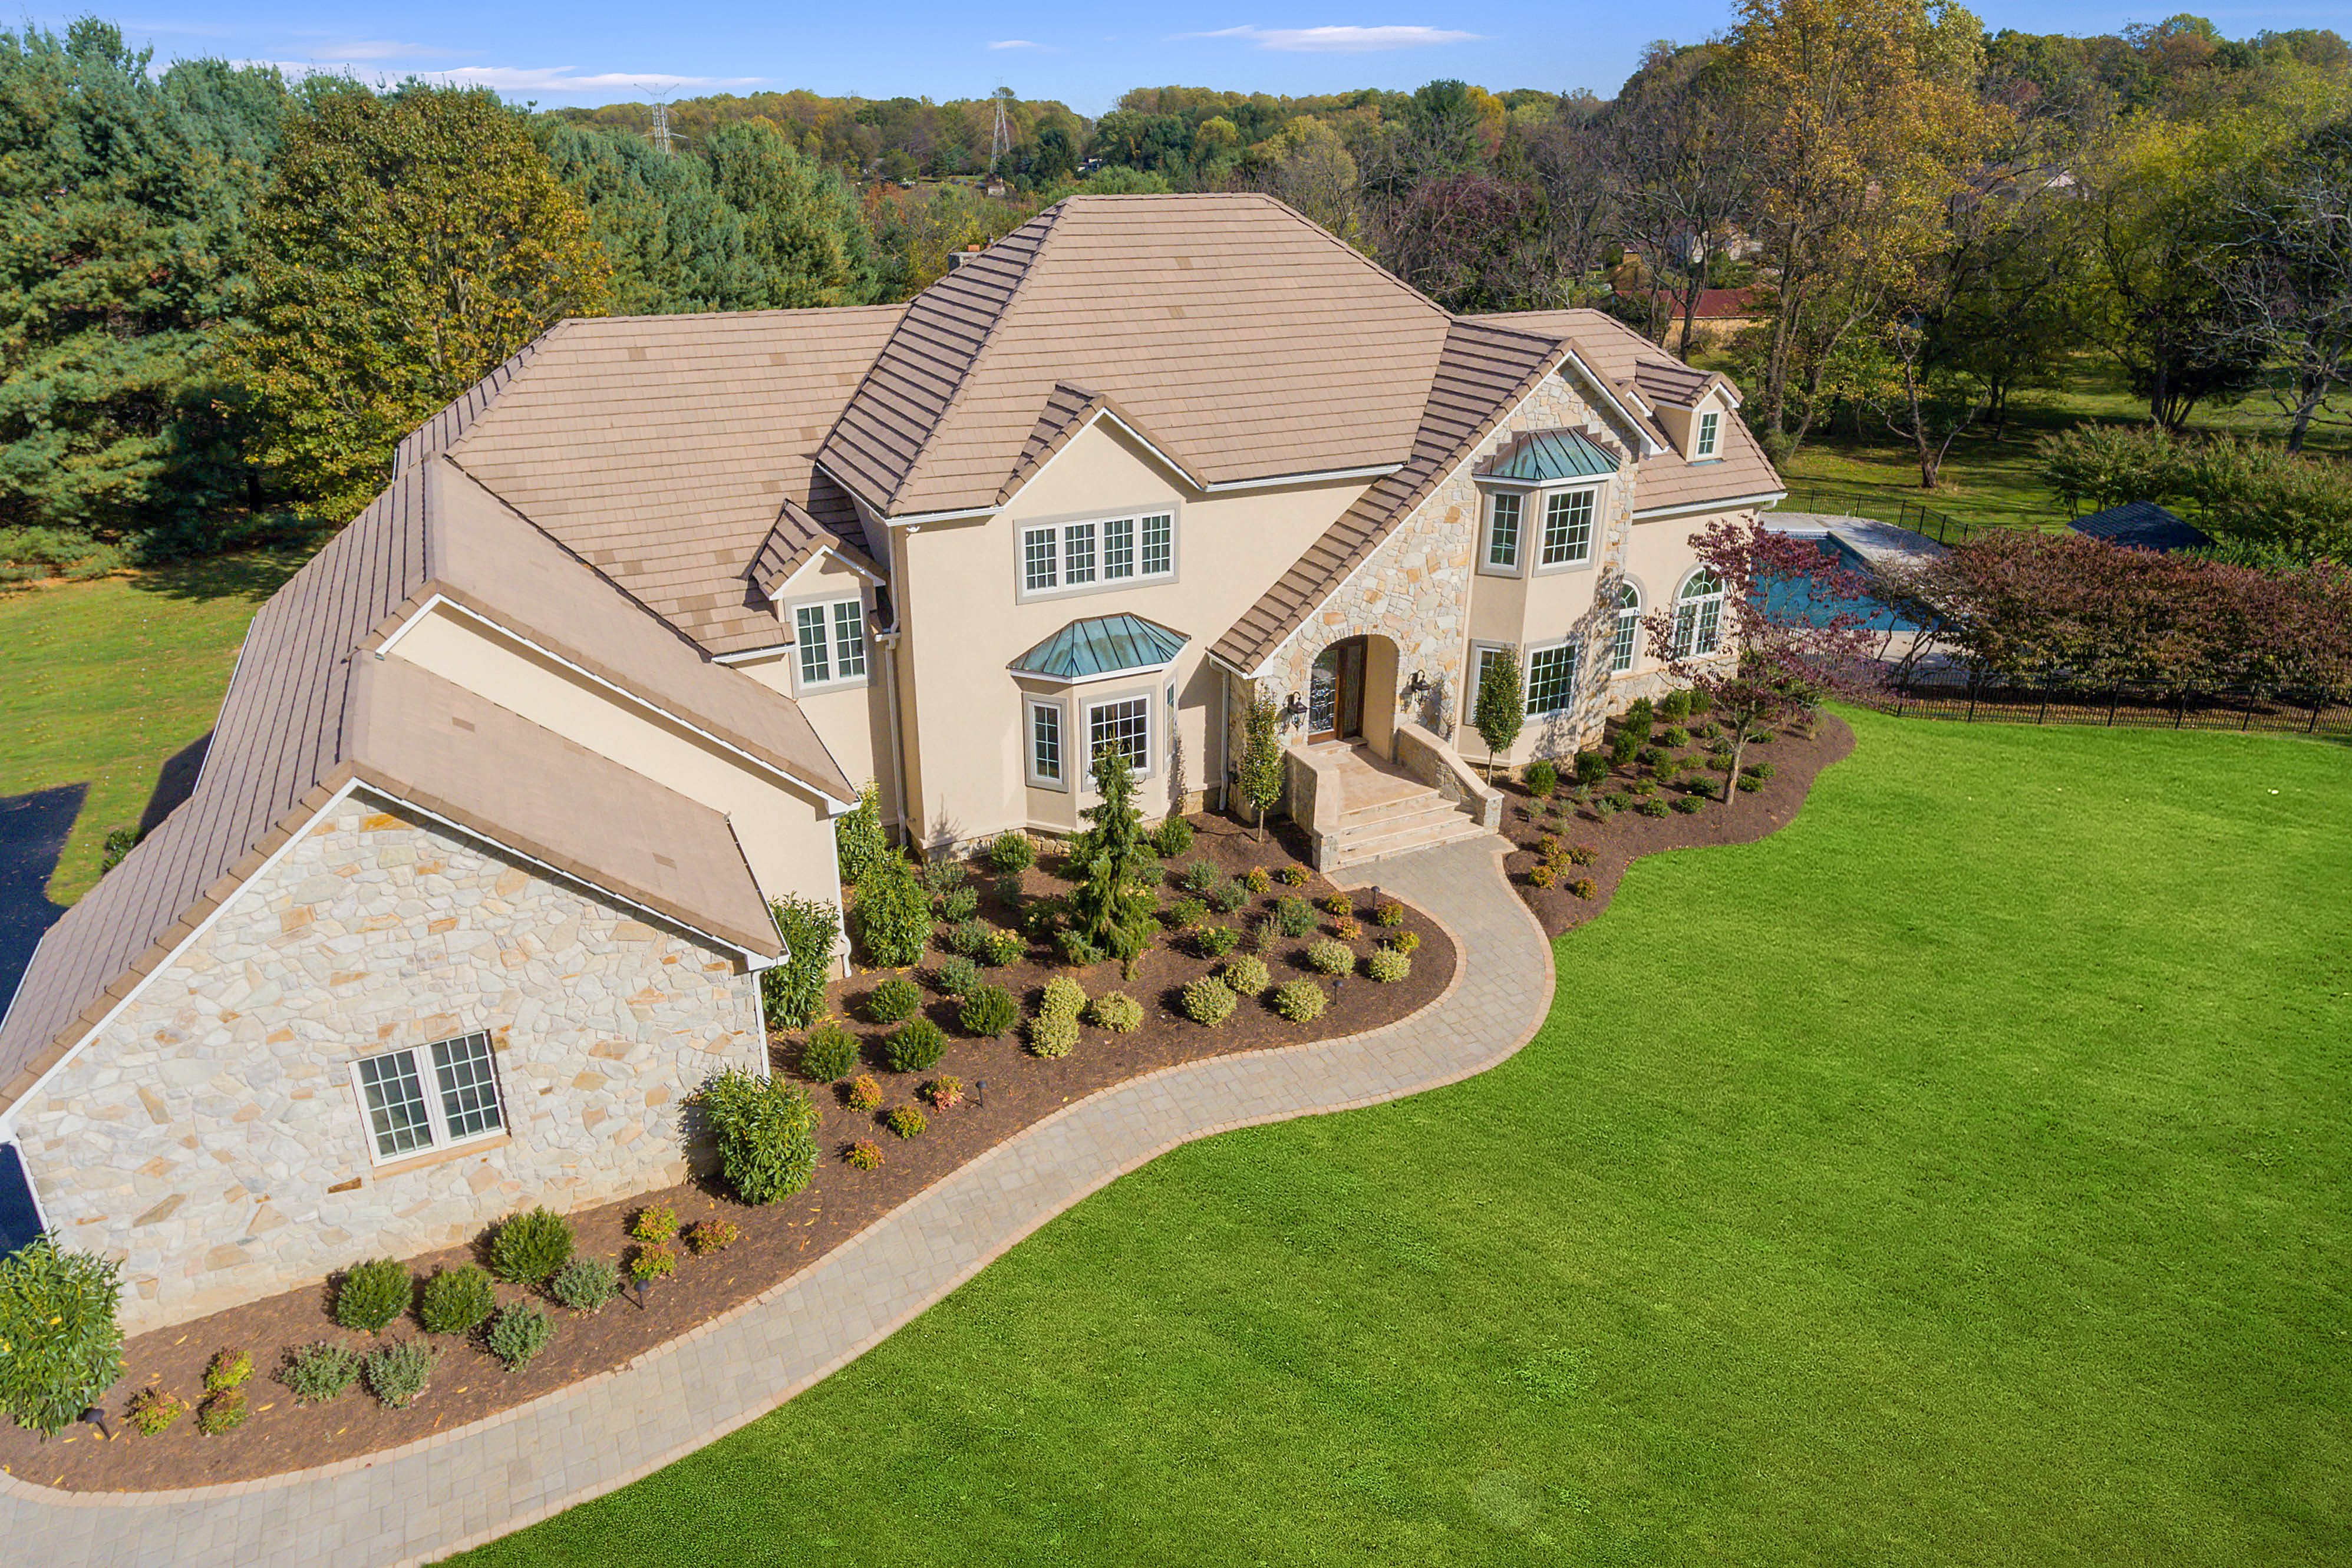 Real Estate Photography - Great Lakes Aerial Video Services Aerial photography for real estate